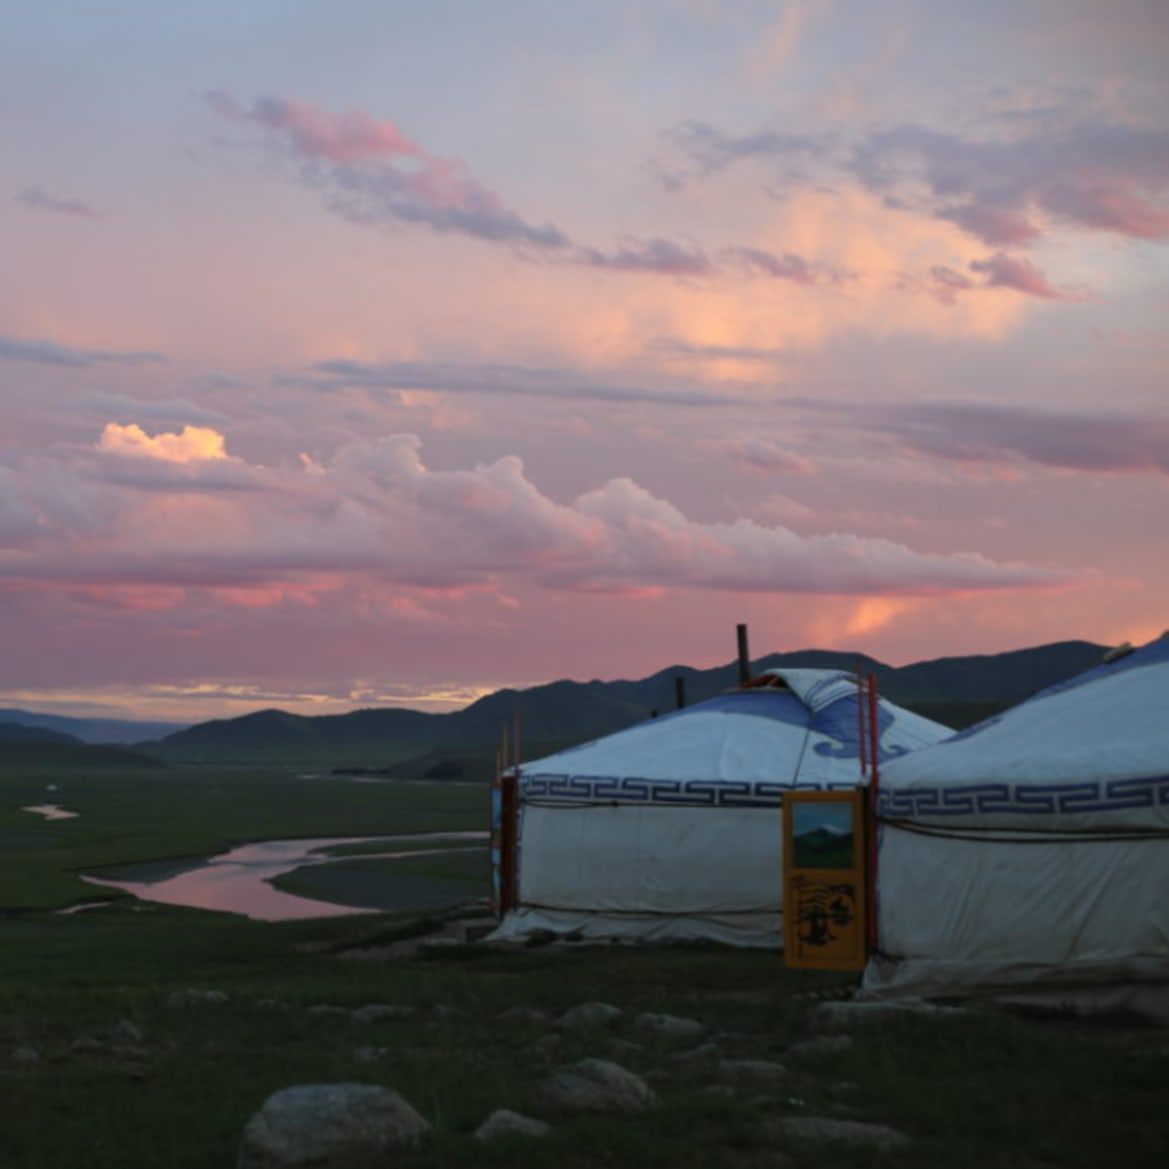 Sunset Over Camp - The Pavilions Mongolia